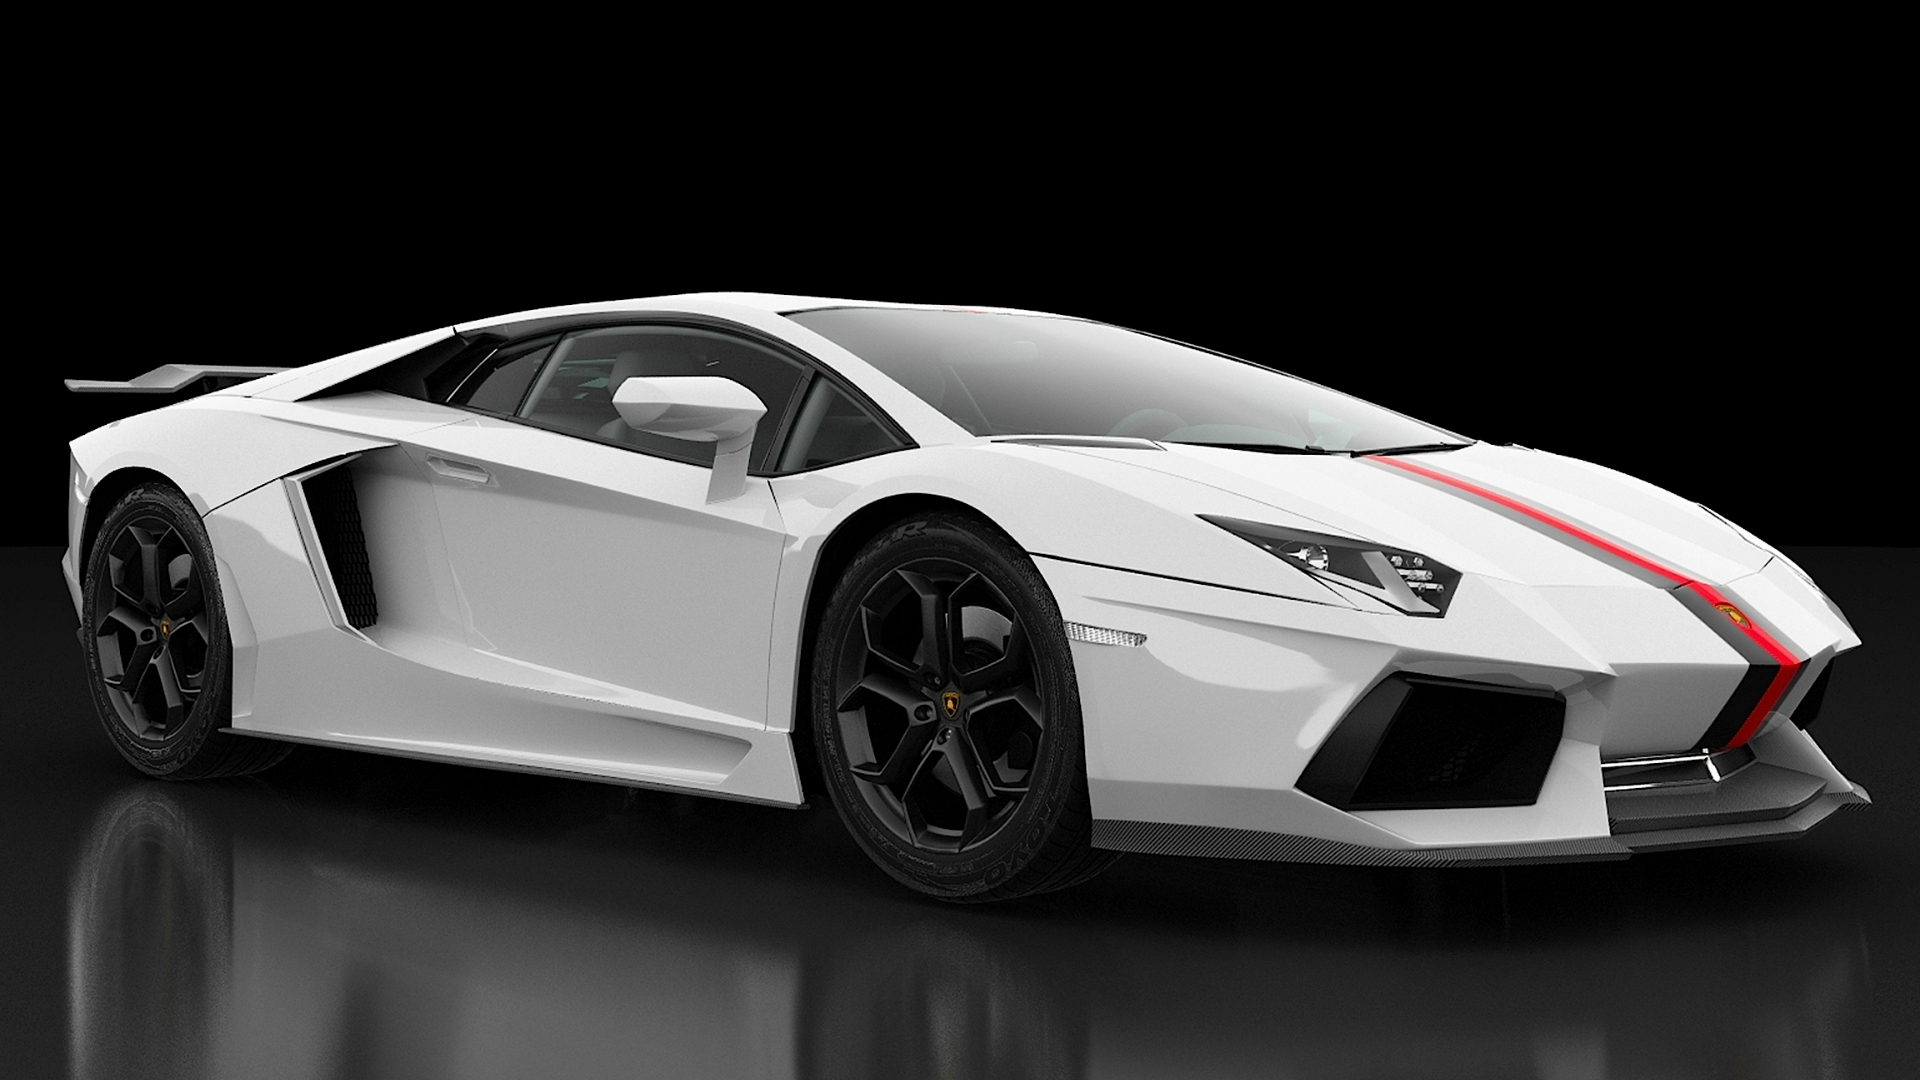 2012 Lamborghini Aventador LP700 4 2 Wallpaper HD Car Wallpapers 1920x1080